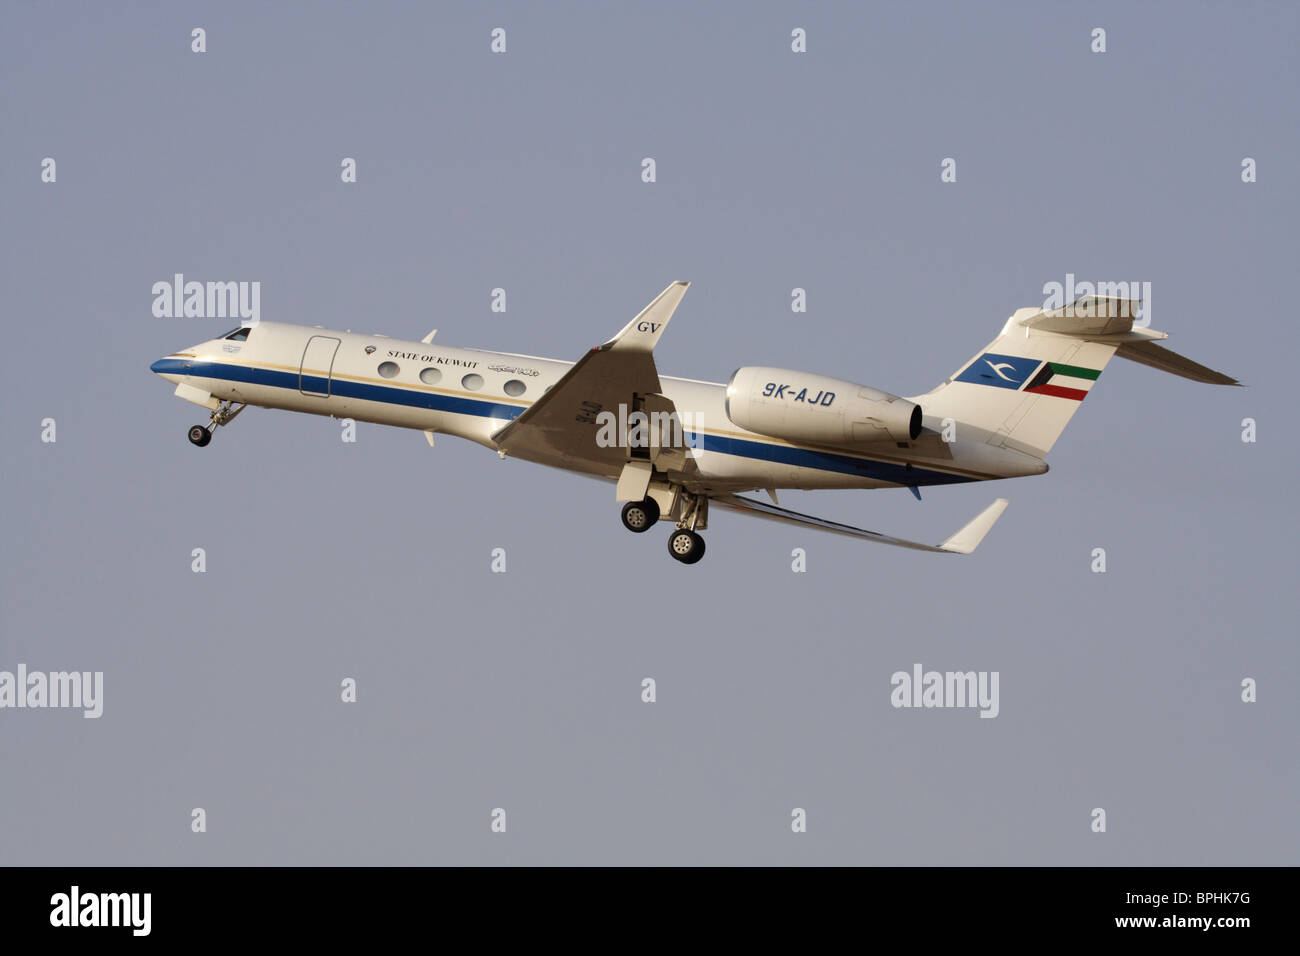 Kuwait Government Gulfstream V business jet, used in an official VIP transport role, shown on takeoff - Stock Image